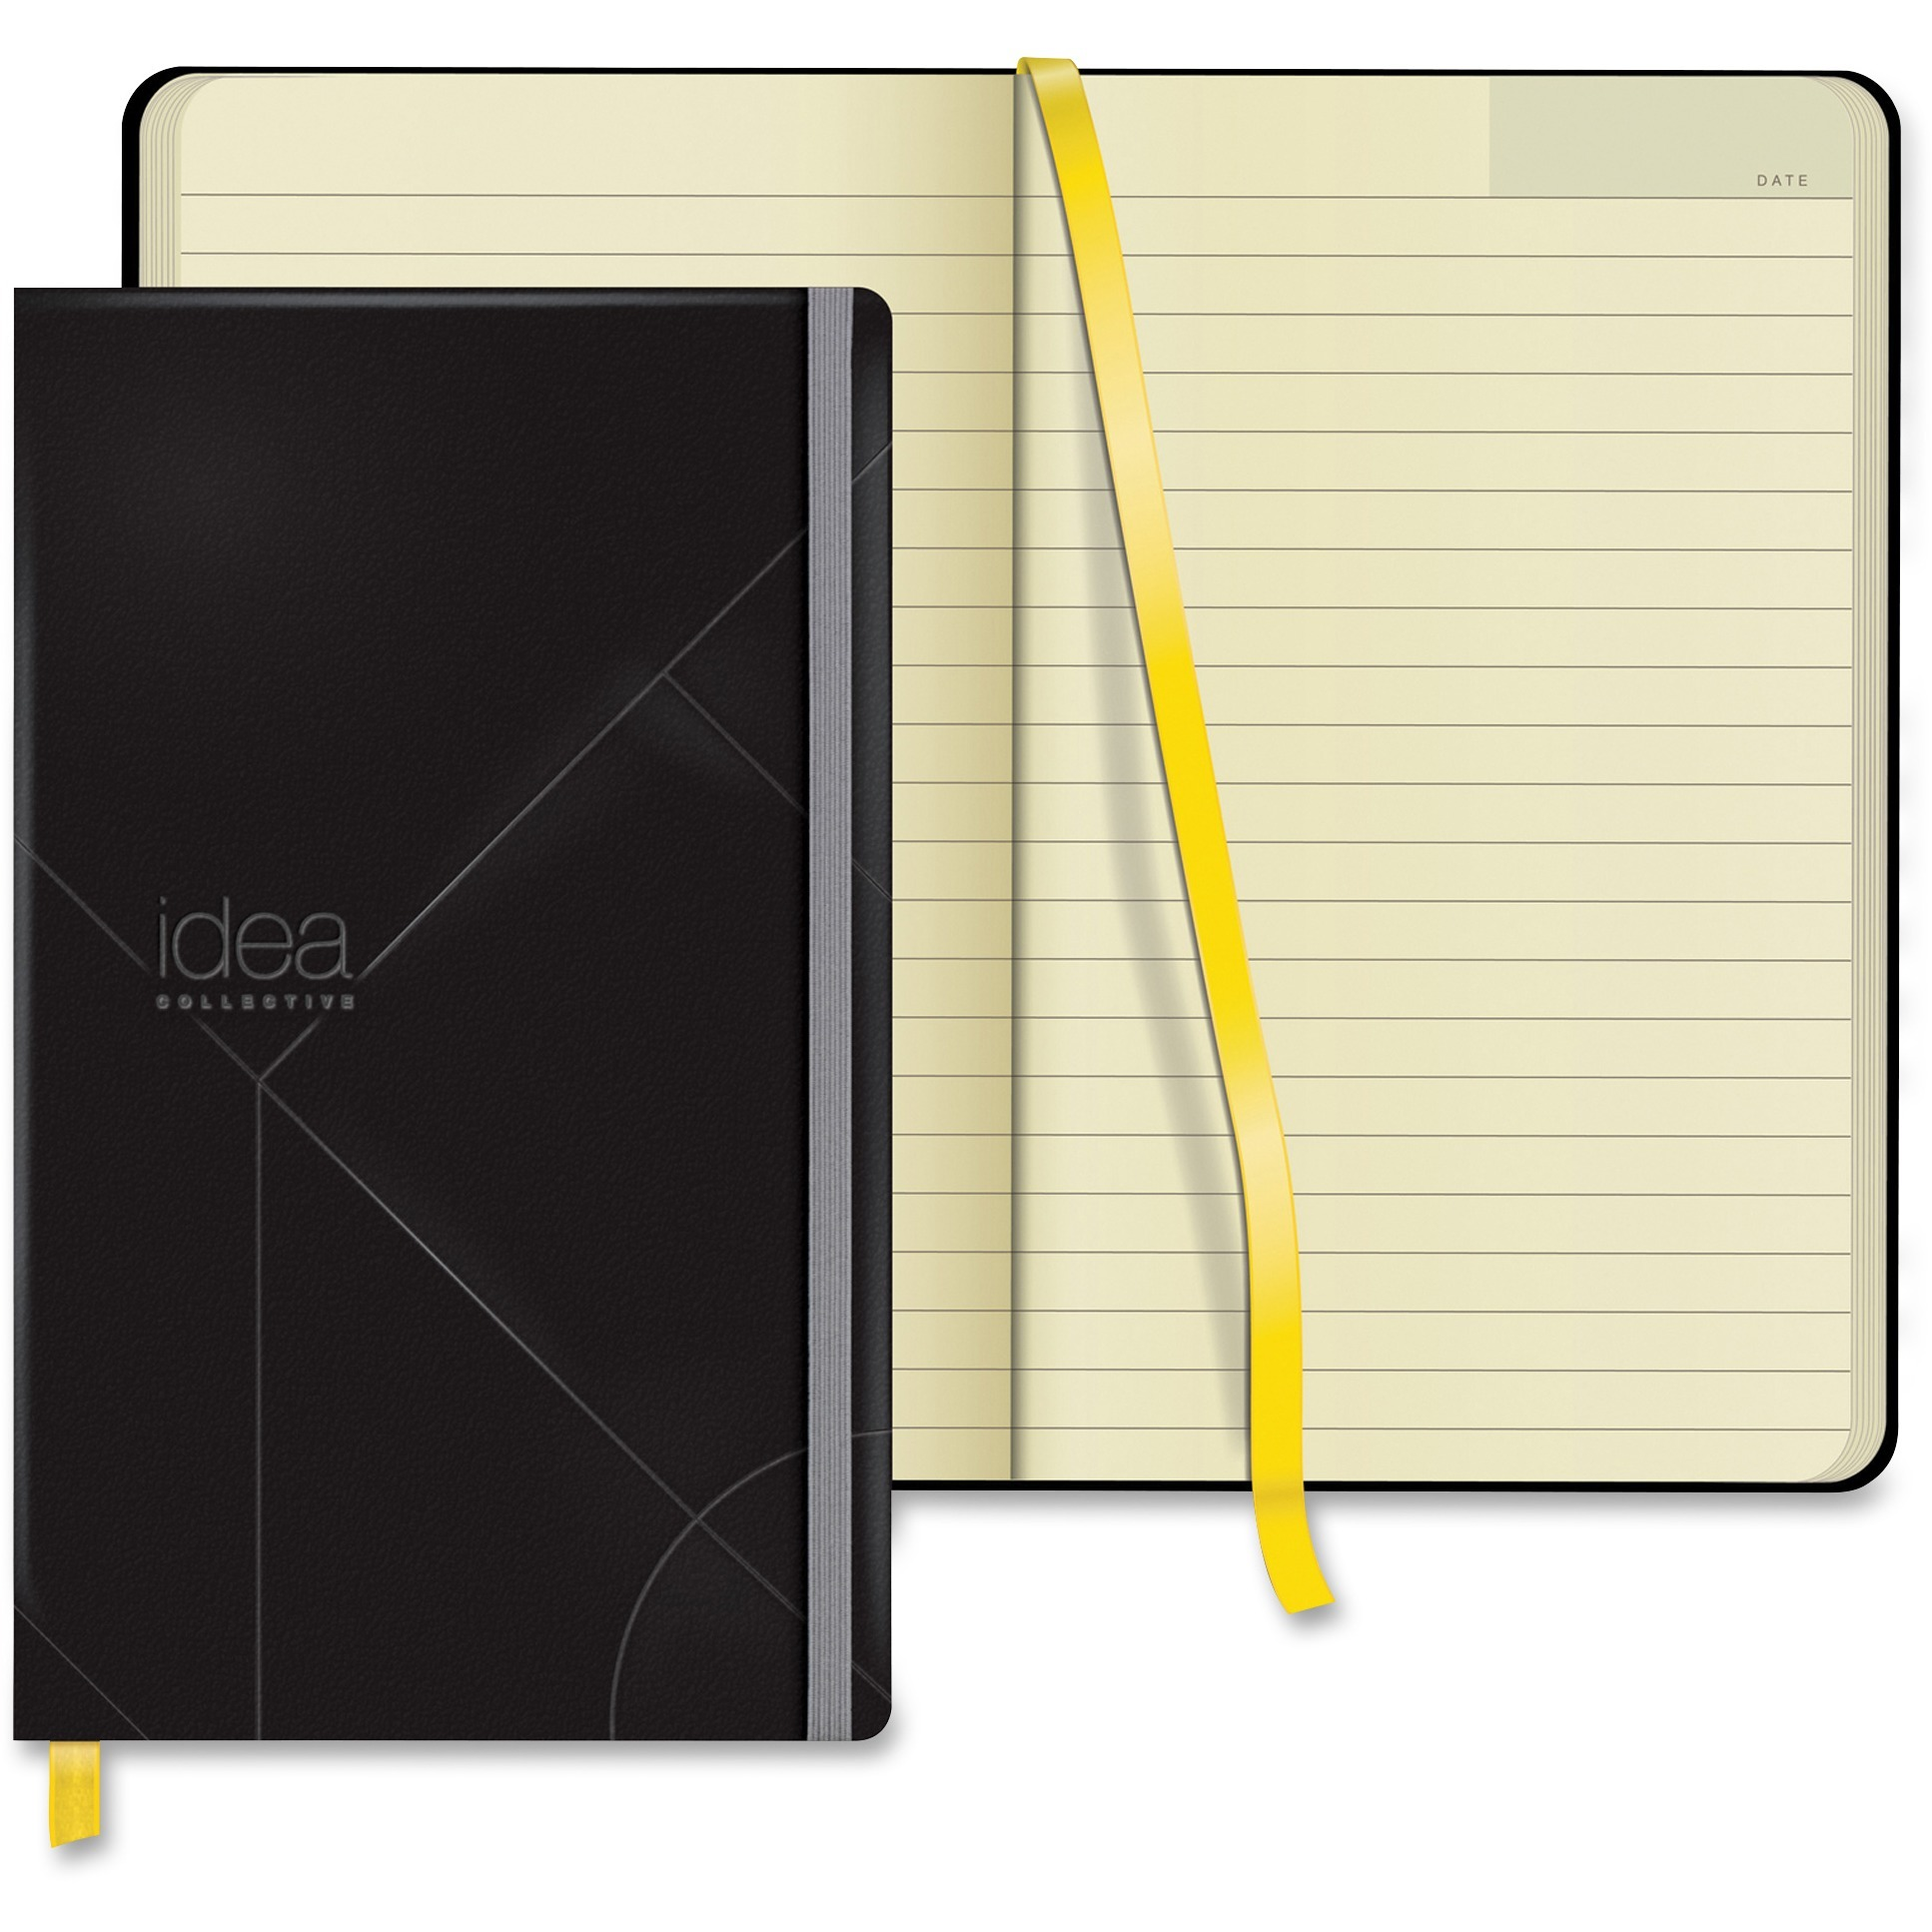 TOPS, TOP56872, Idea Collective Wide-ruled Journal, 1 Each